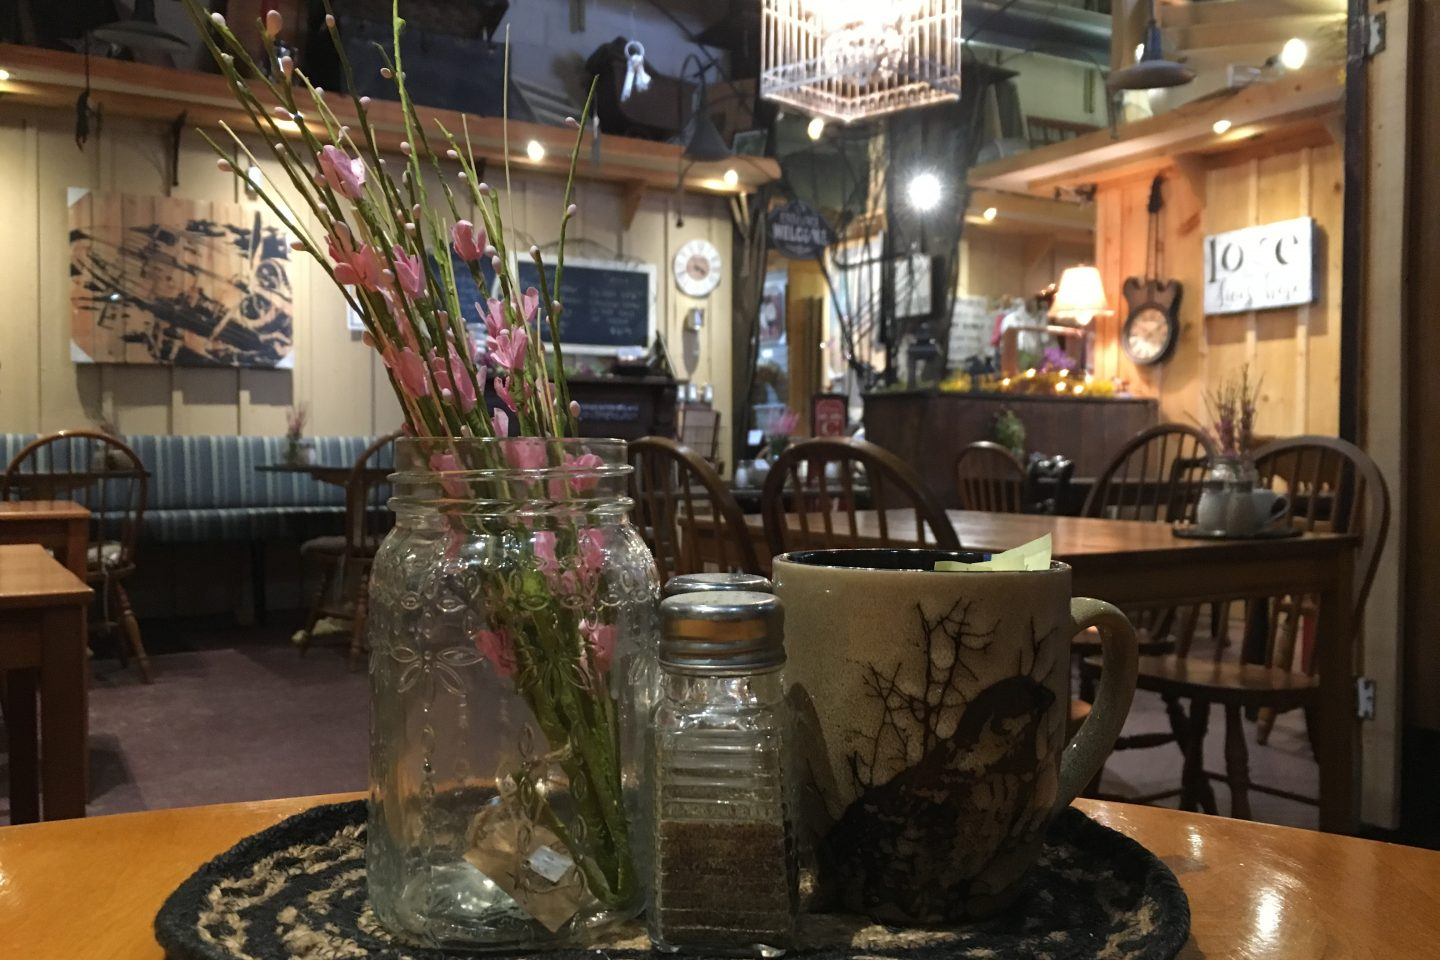 Serenity Country Candles Gift Shop and Cafe